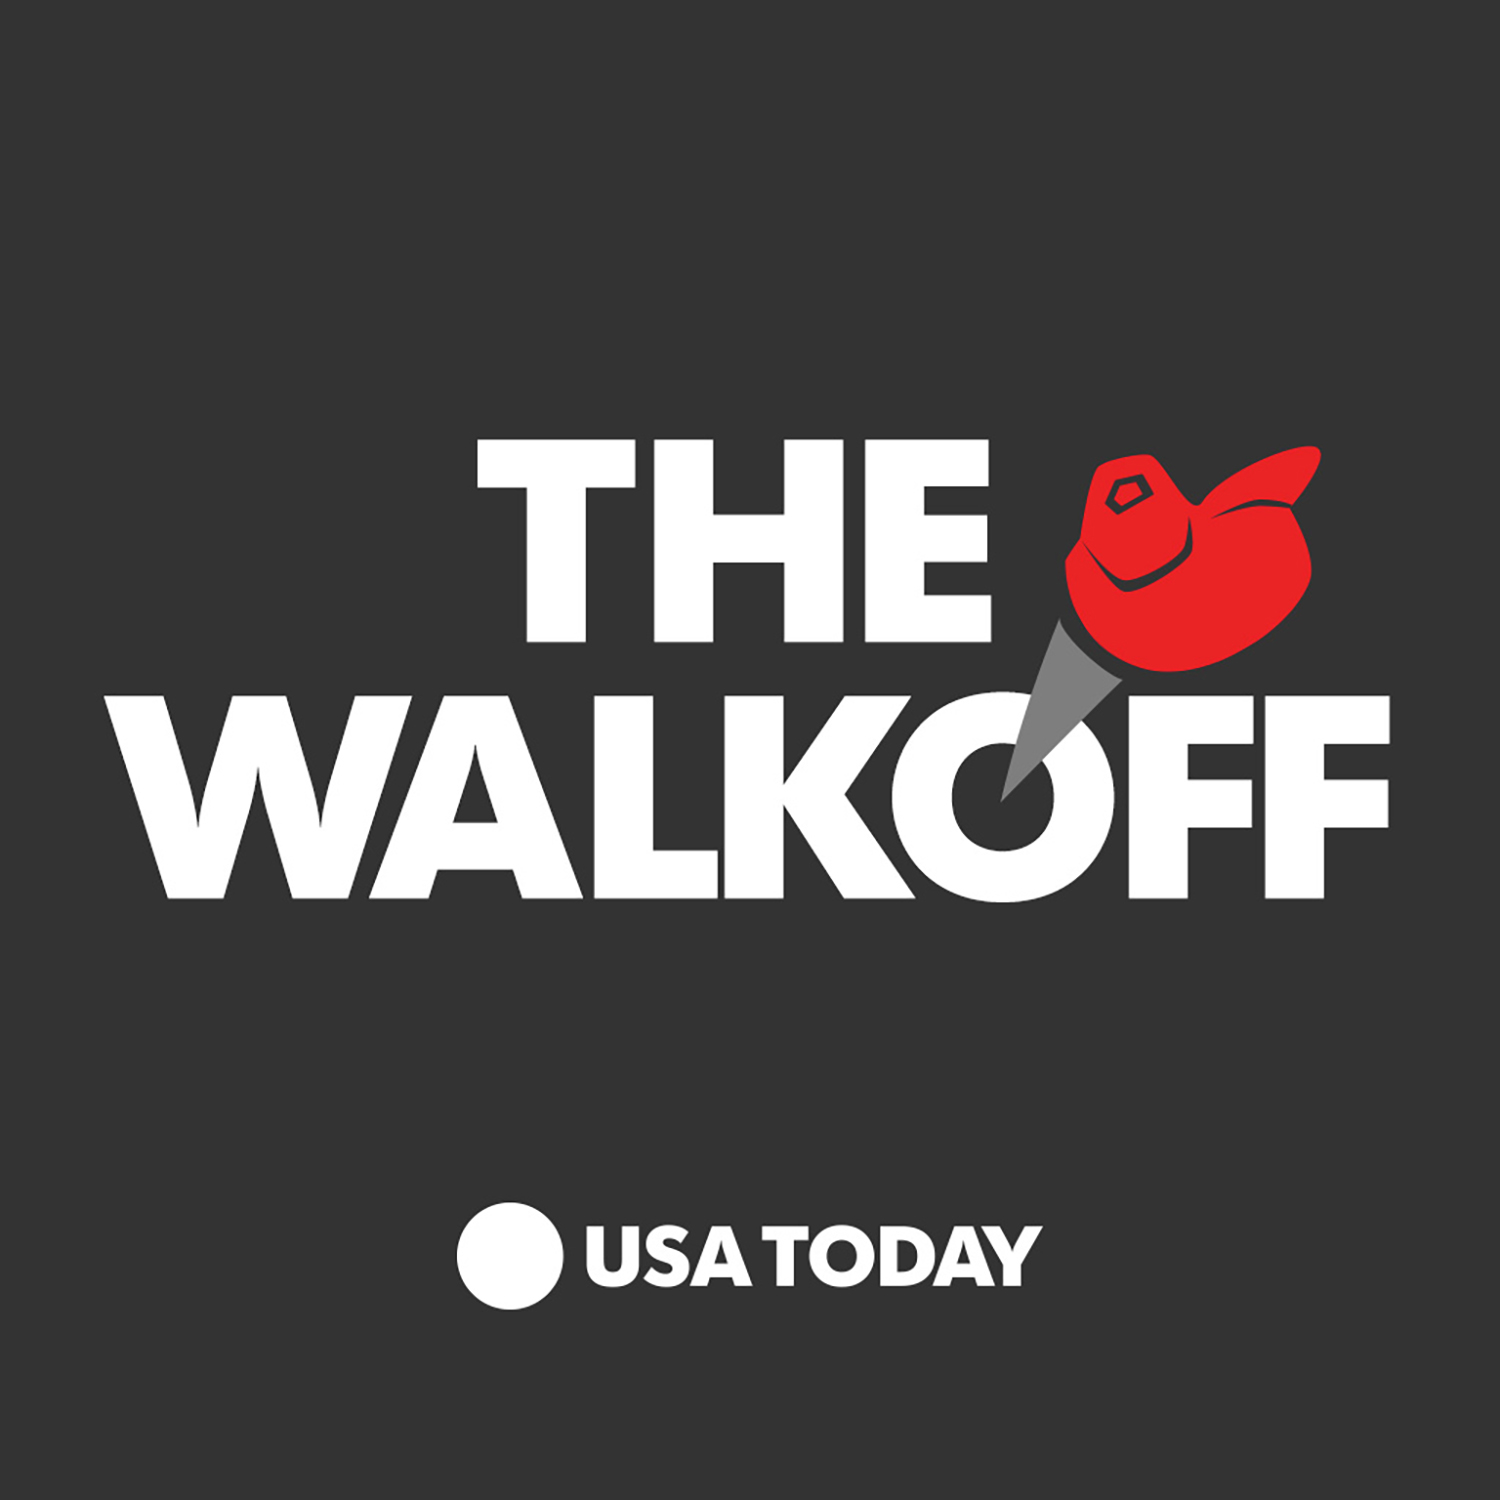 The Walkoff